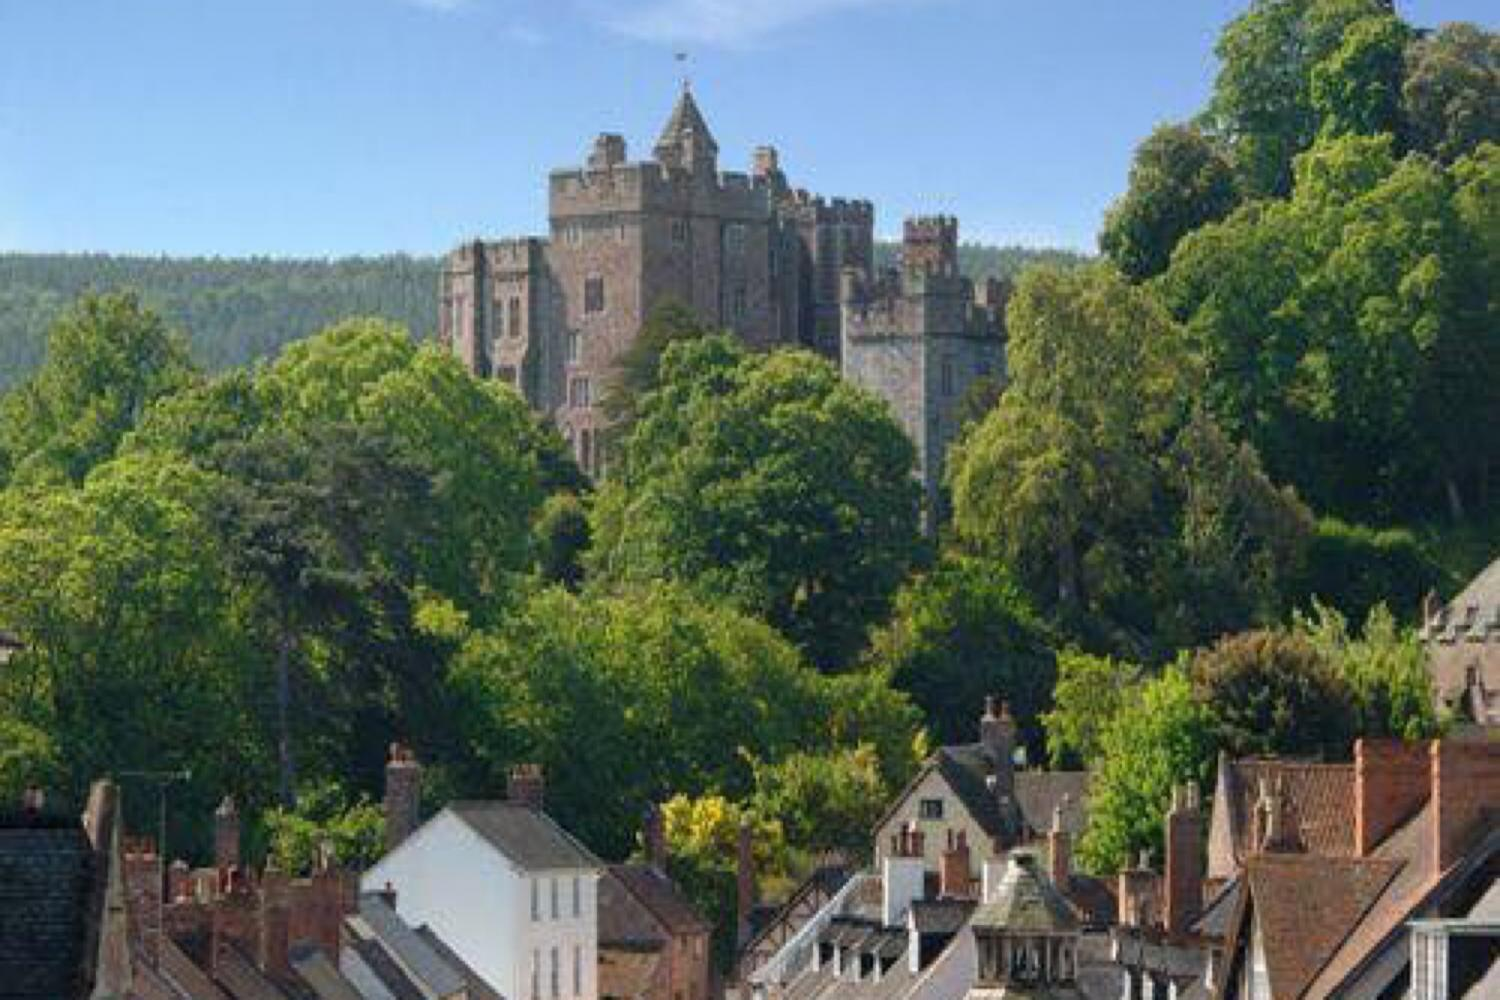 Dunster Castle from the High Street